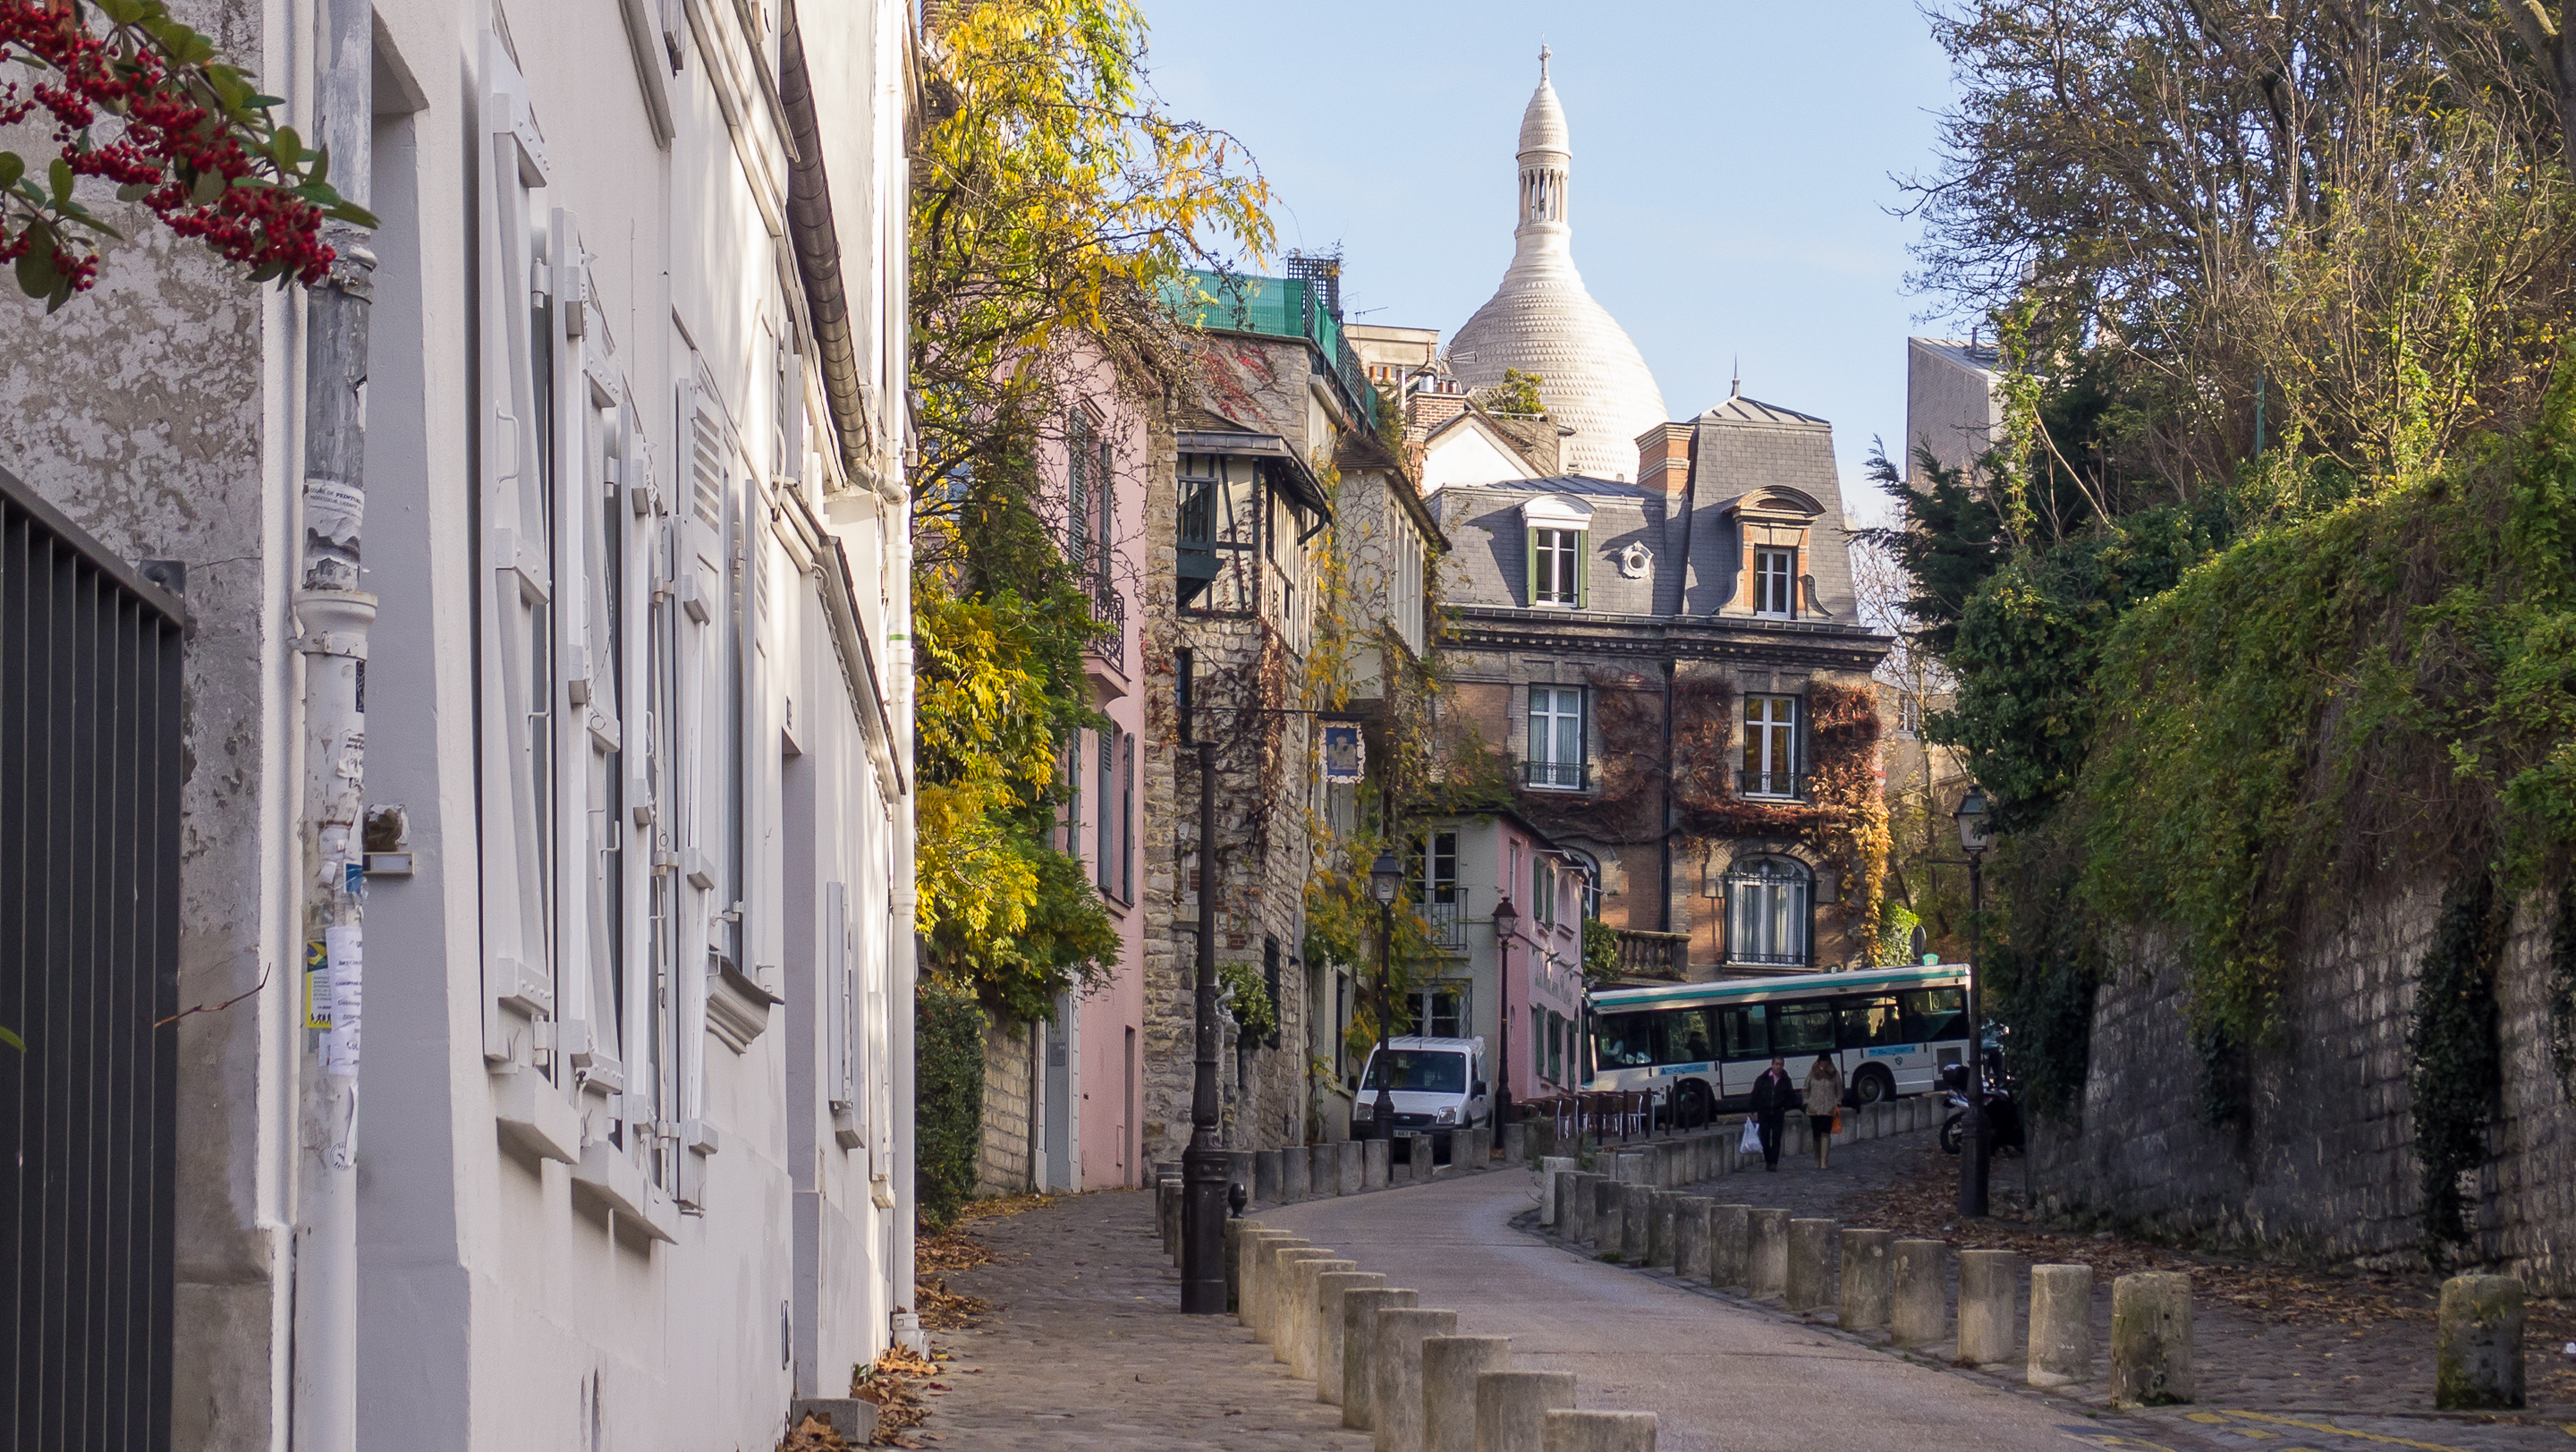 Experience the crown of Montmartre, the Sacre Coeur